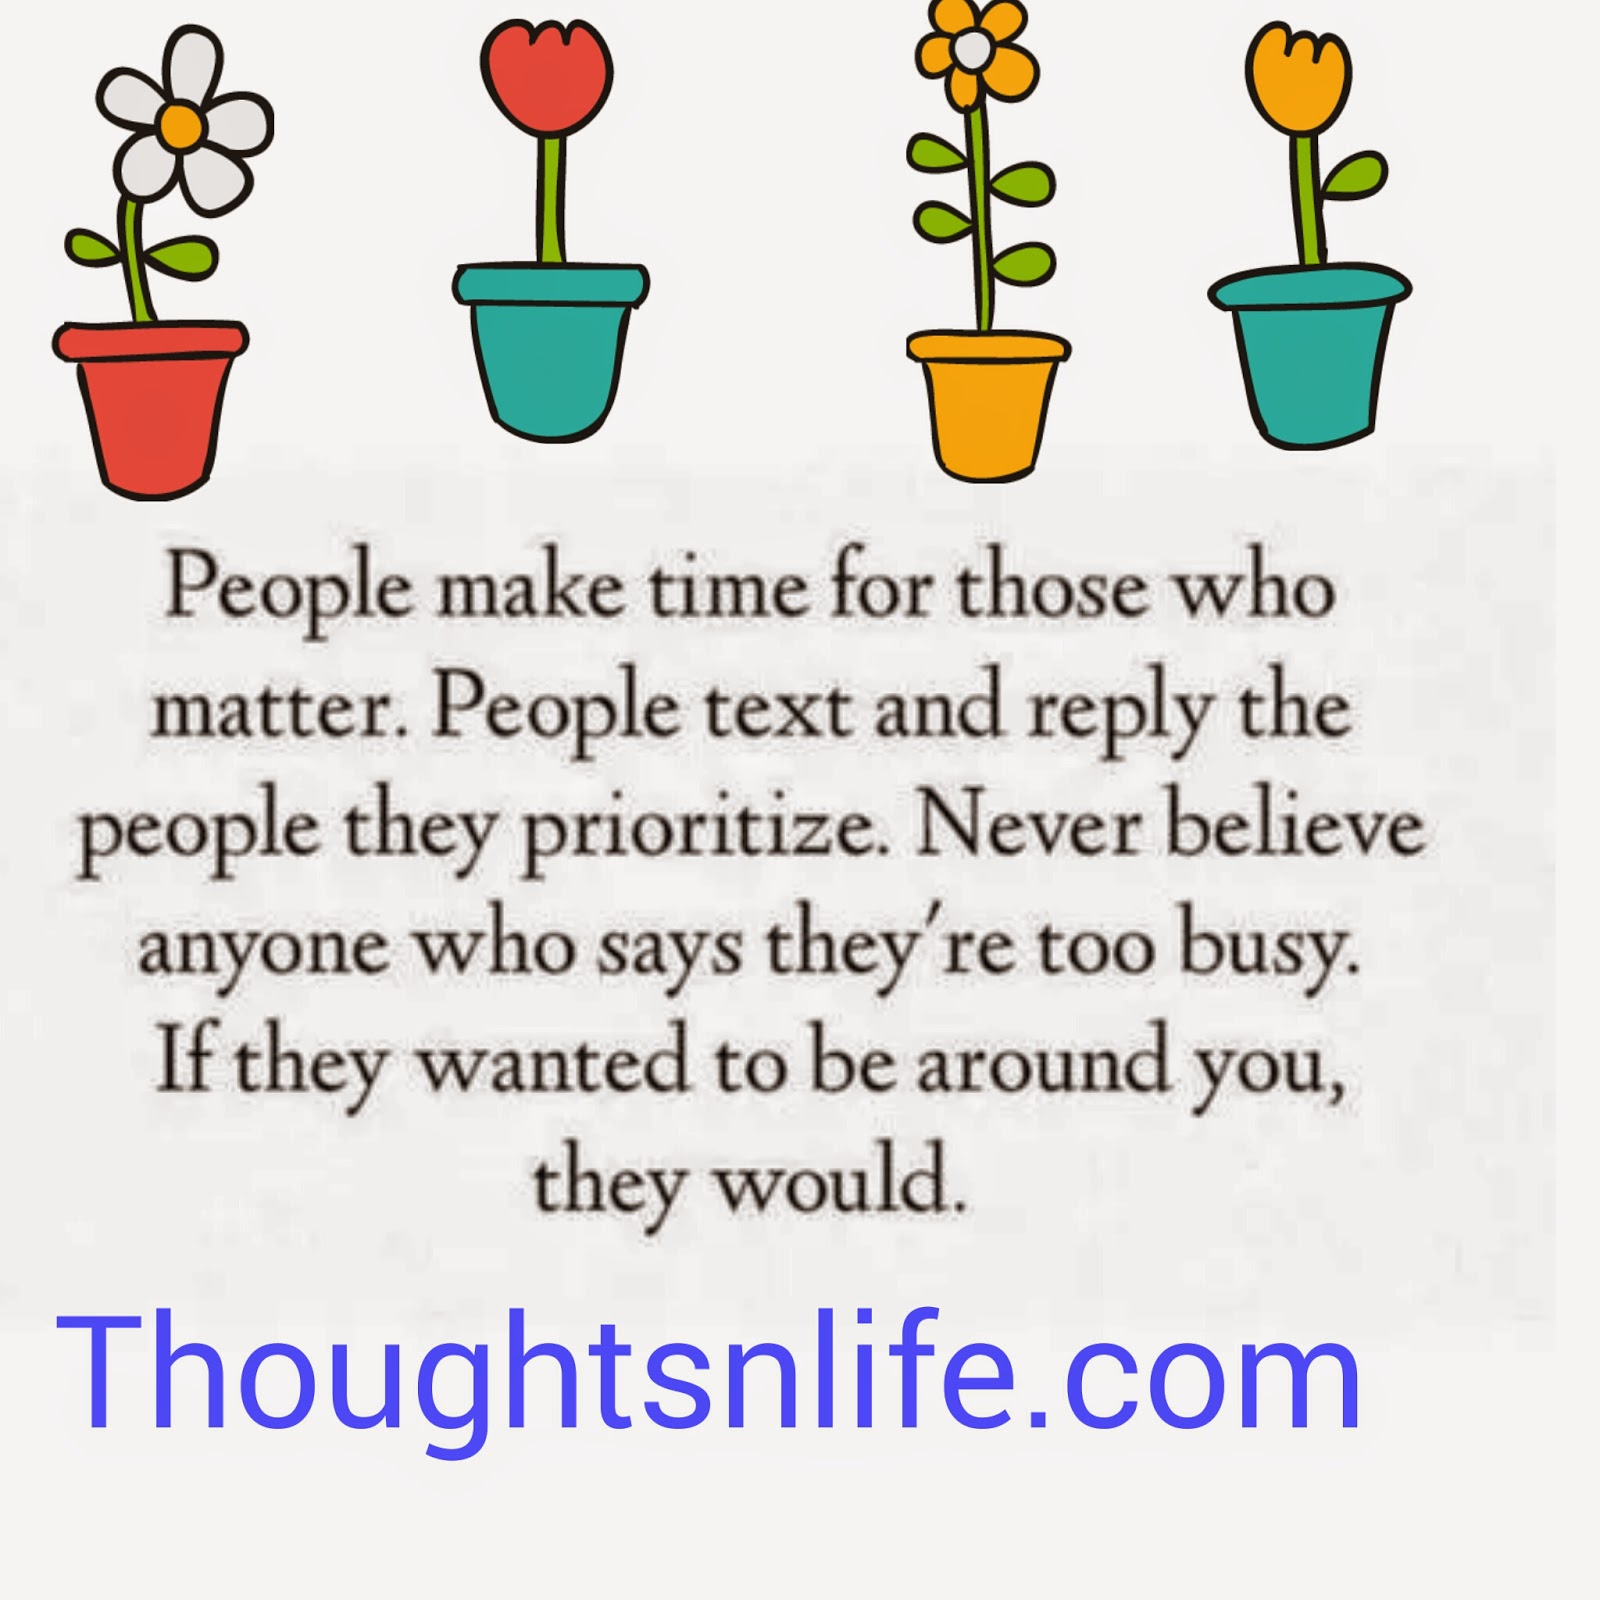 thoughtsnlife. relationship quotes, people make time for what's important to them,